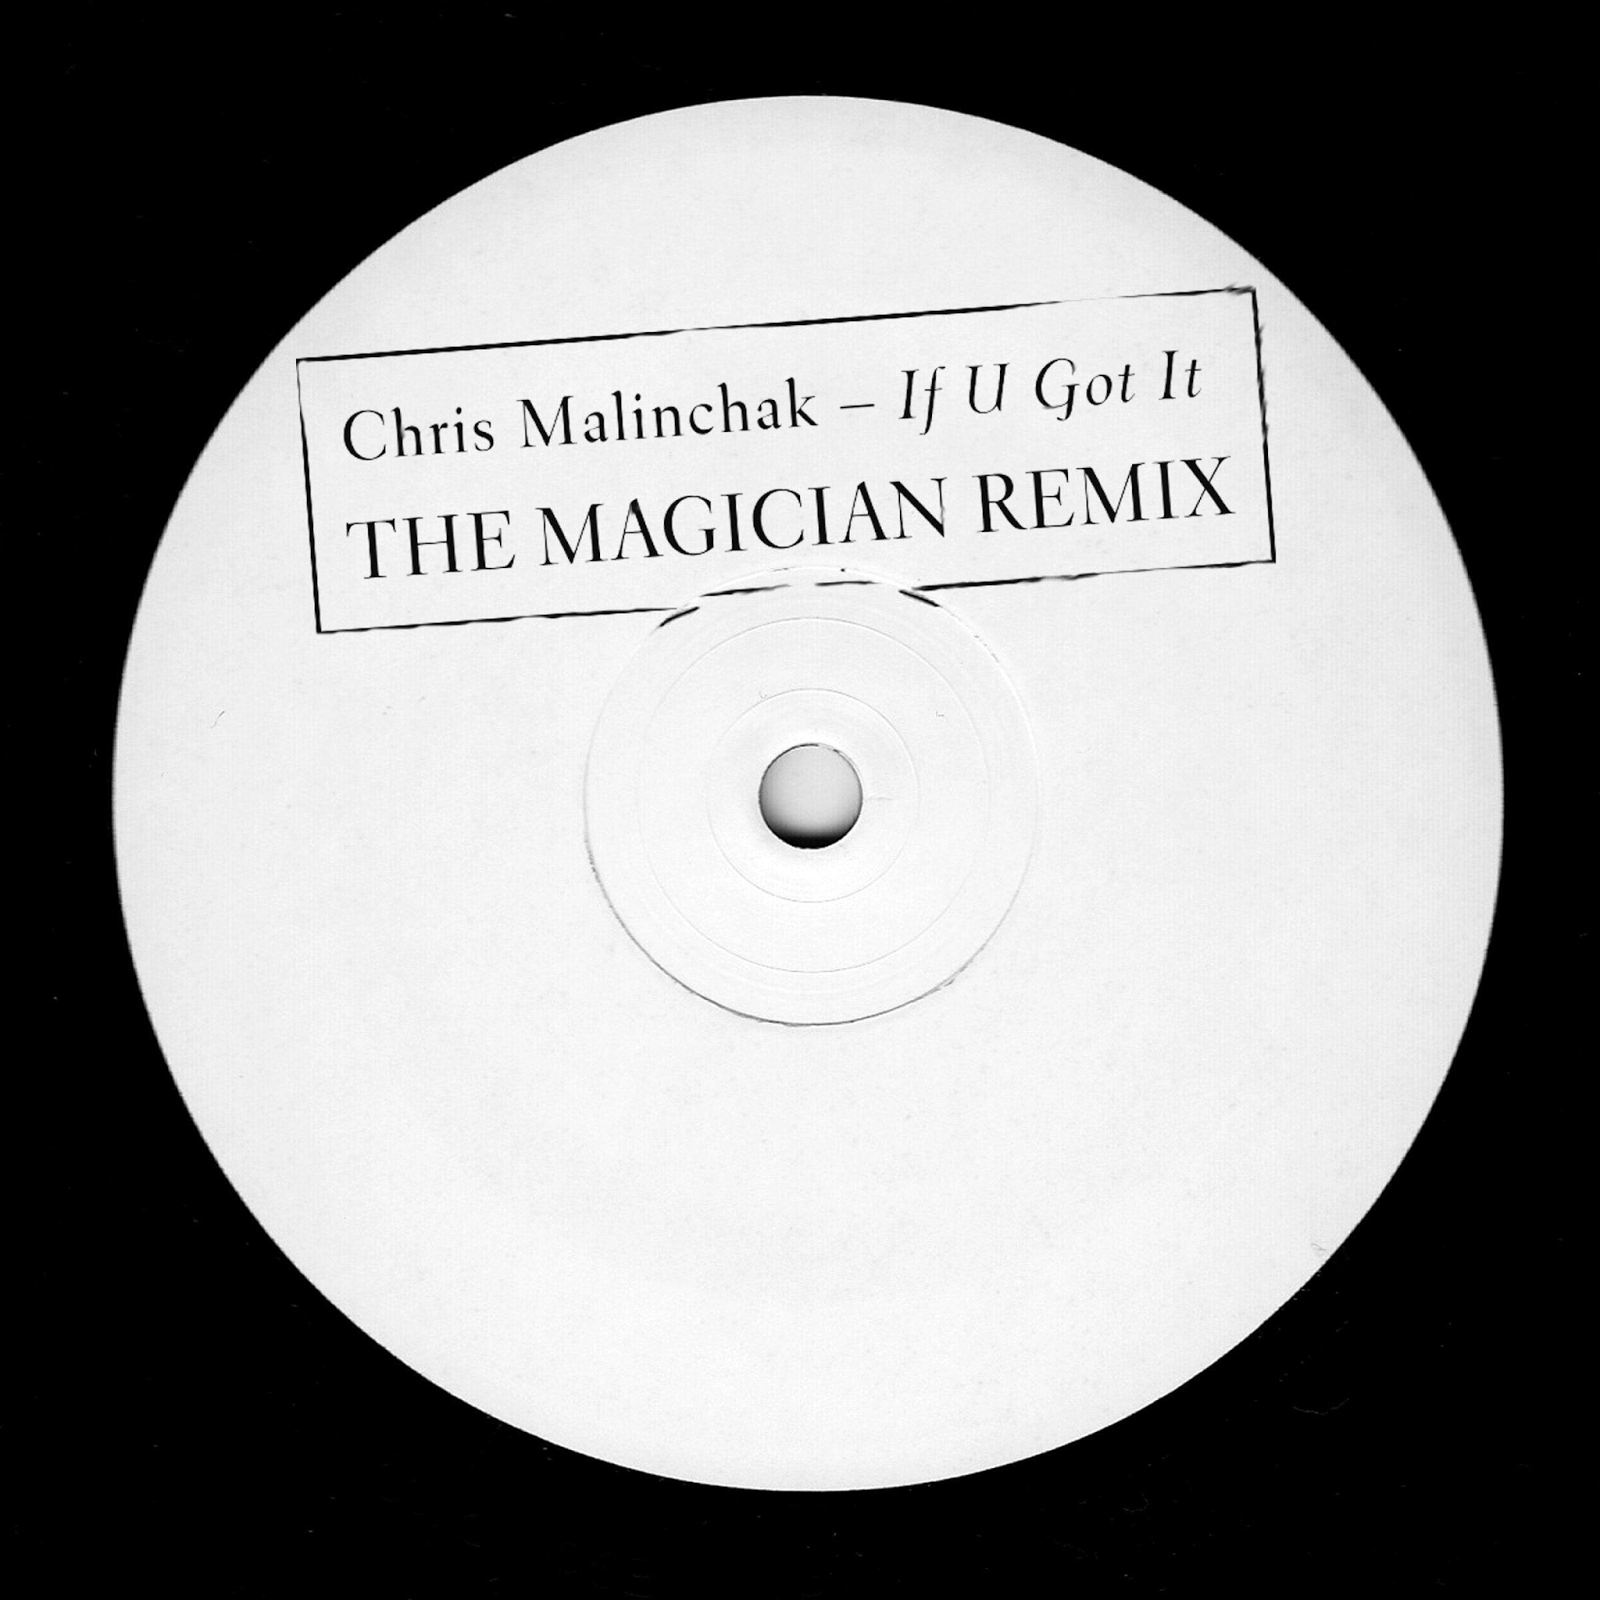 Chris Malinchak - If U Got It (The Magician Remix)